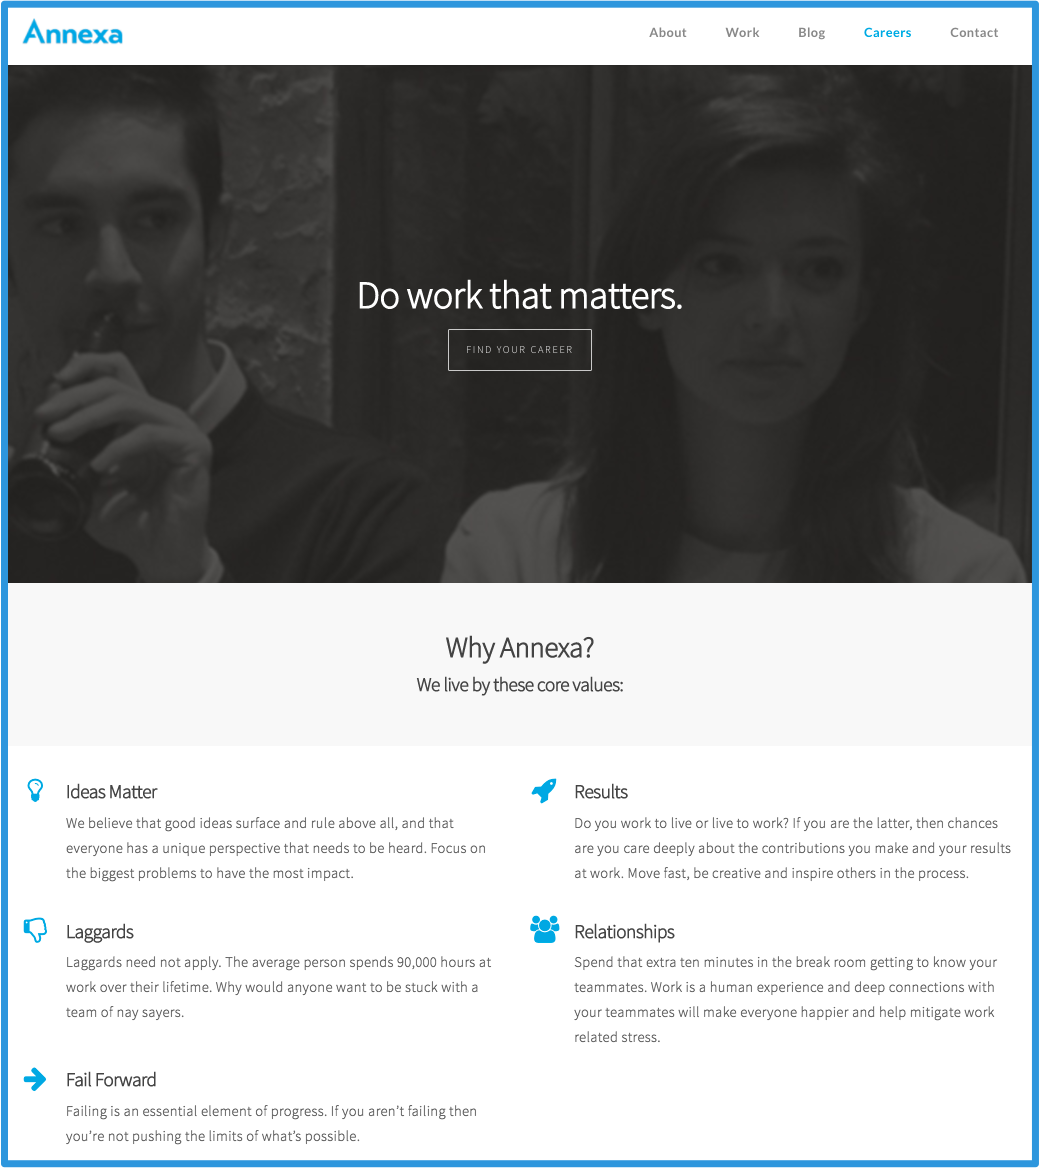 Having a bad looking careers page is one of the biggest hiring mistakes. Here is an example of a great careers page.